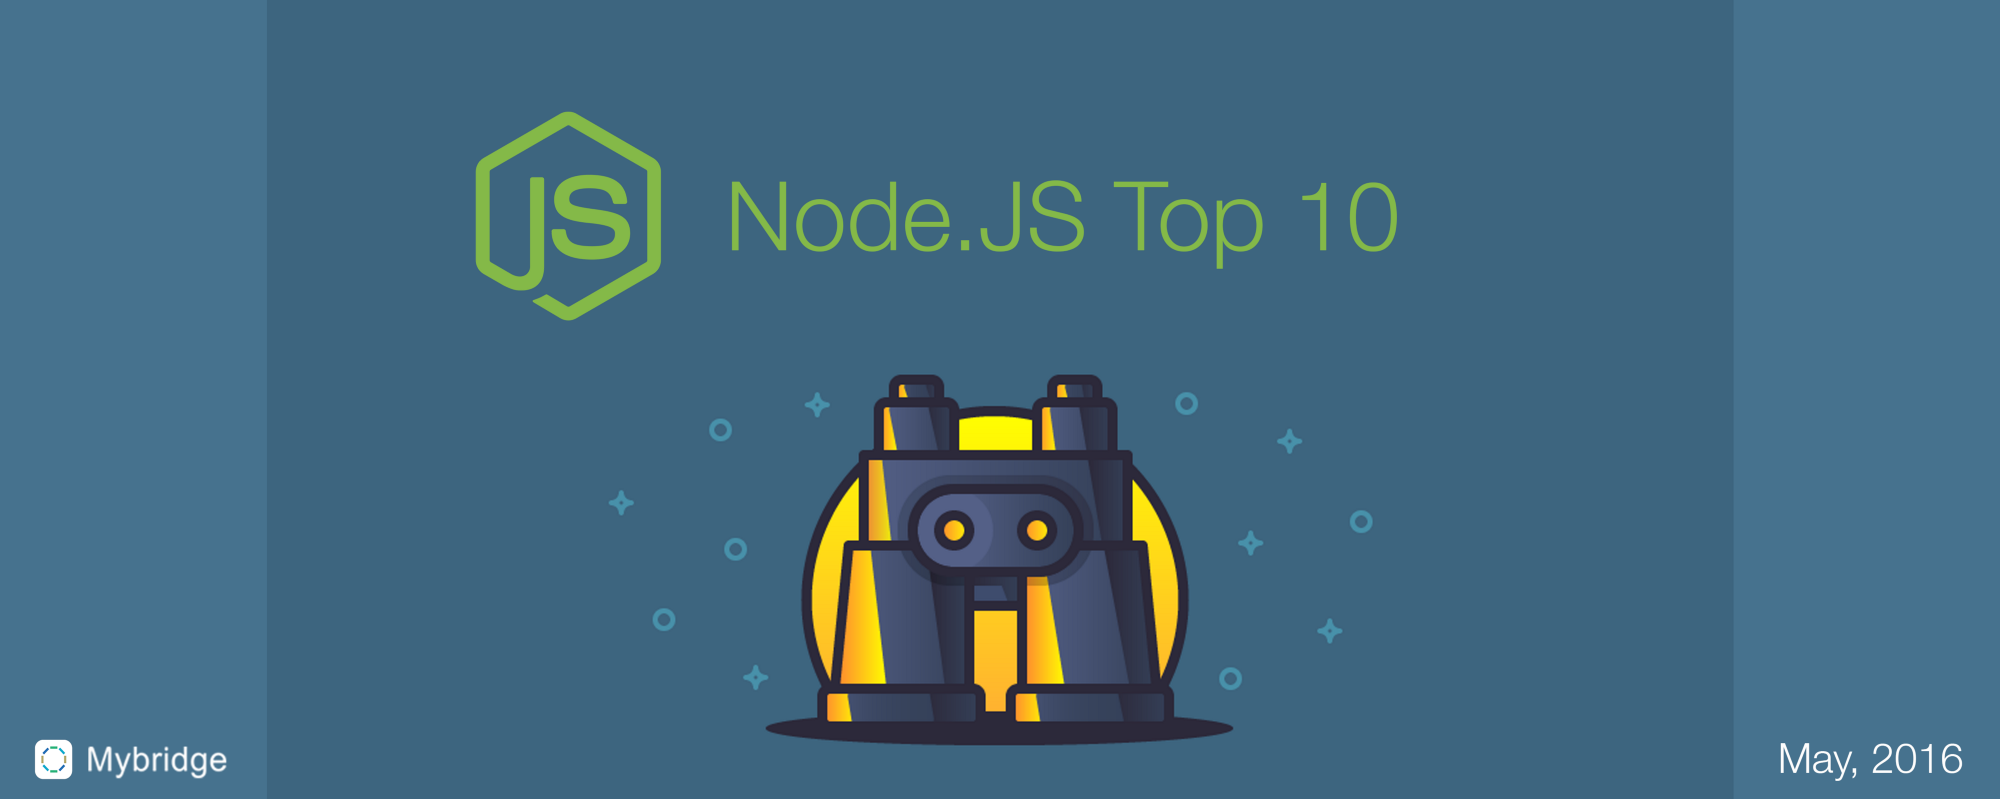 Top 10 Node.JS Articles for the Past Month.